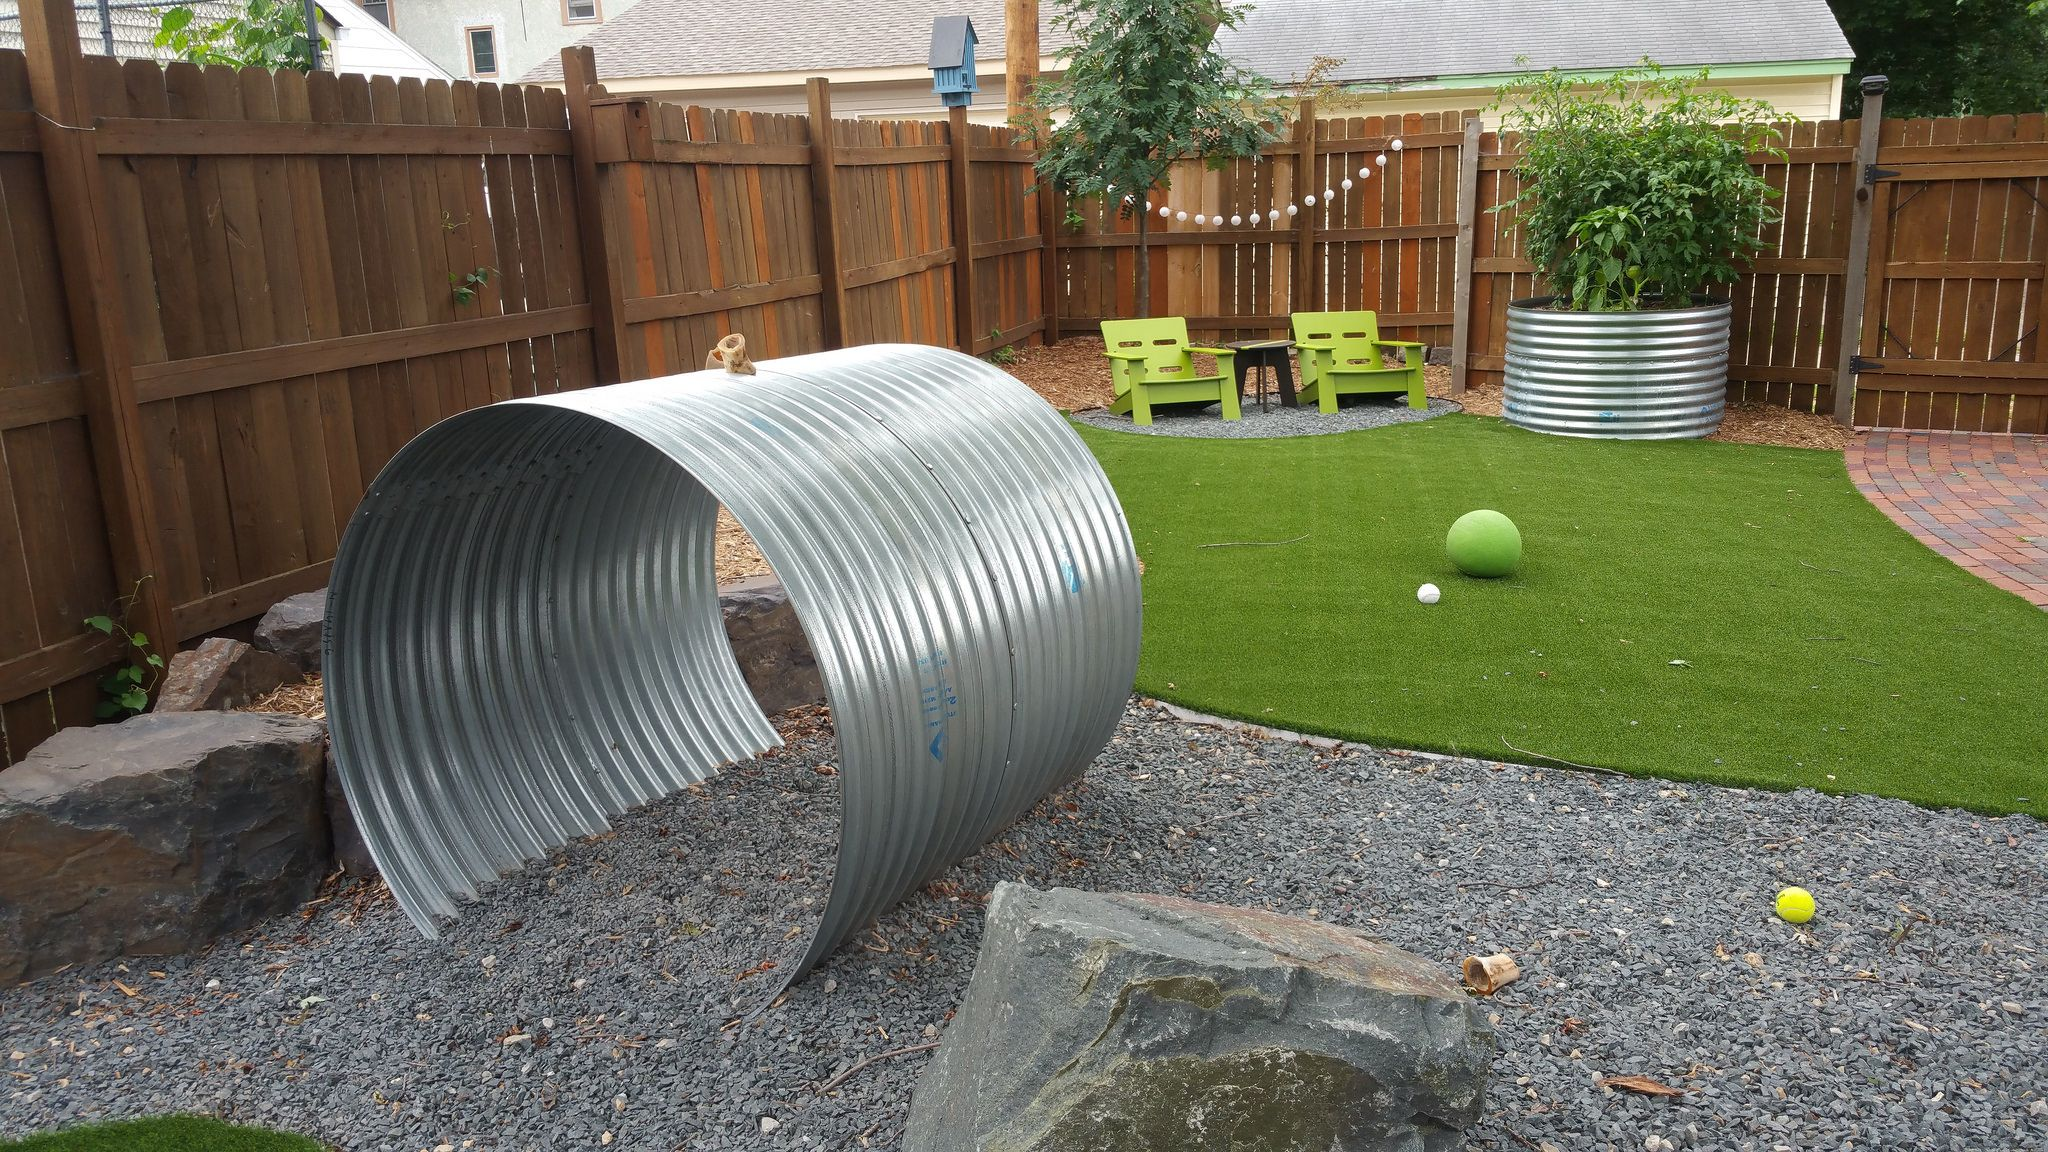 This Is A Dog Scape Play Area With Artificial Grass And Culverts